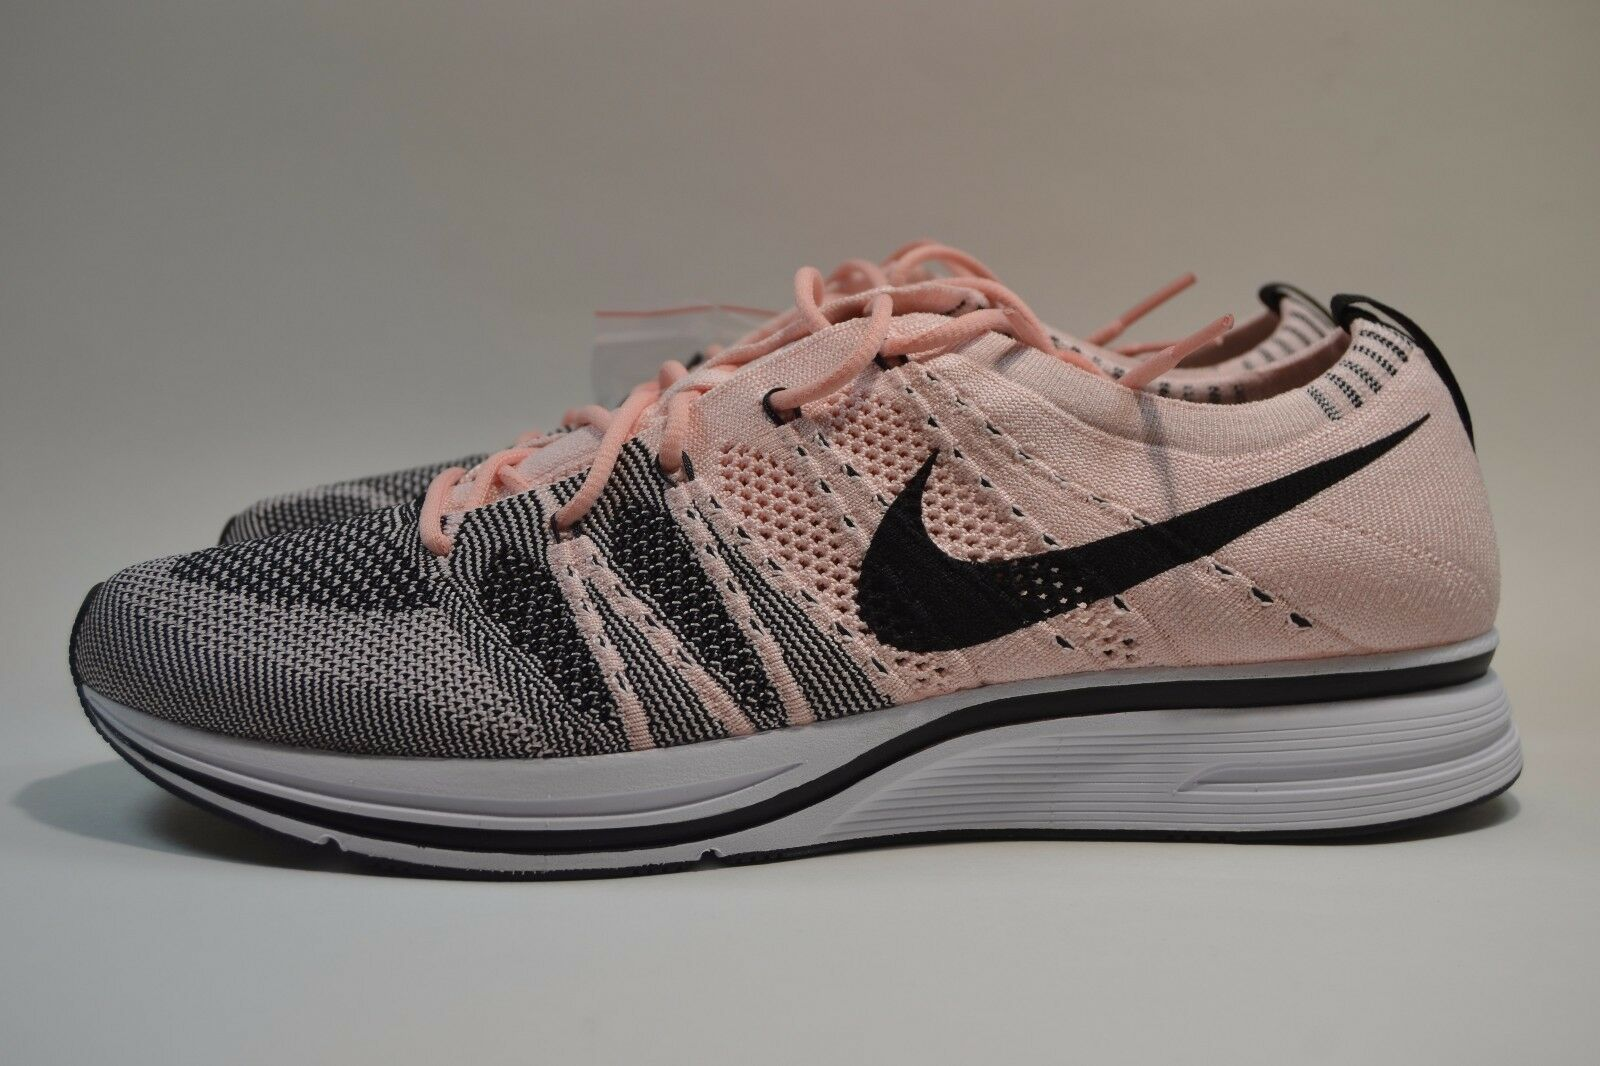 New Mens Nike Flyknit Trainer Sunset Tint Black Pink Beach AH8396-600